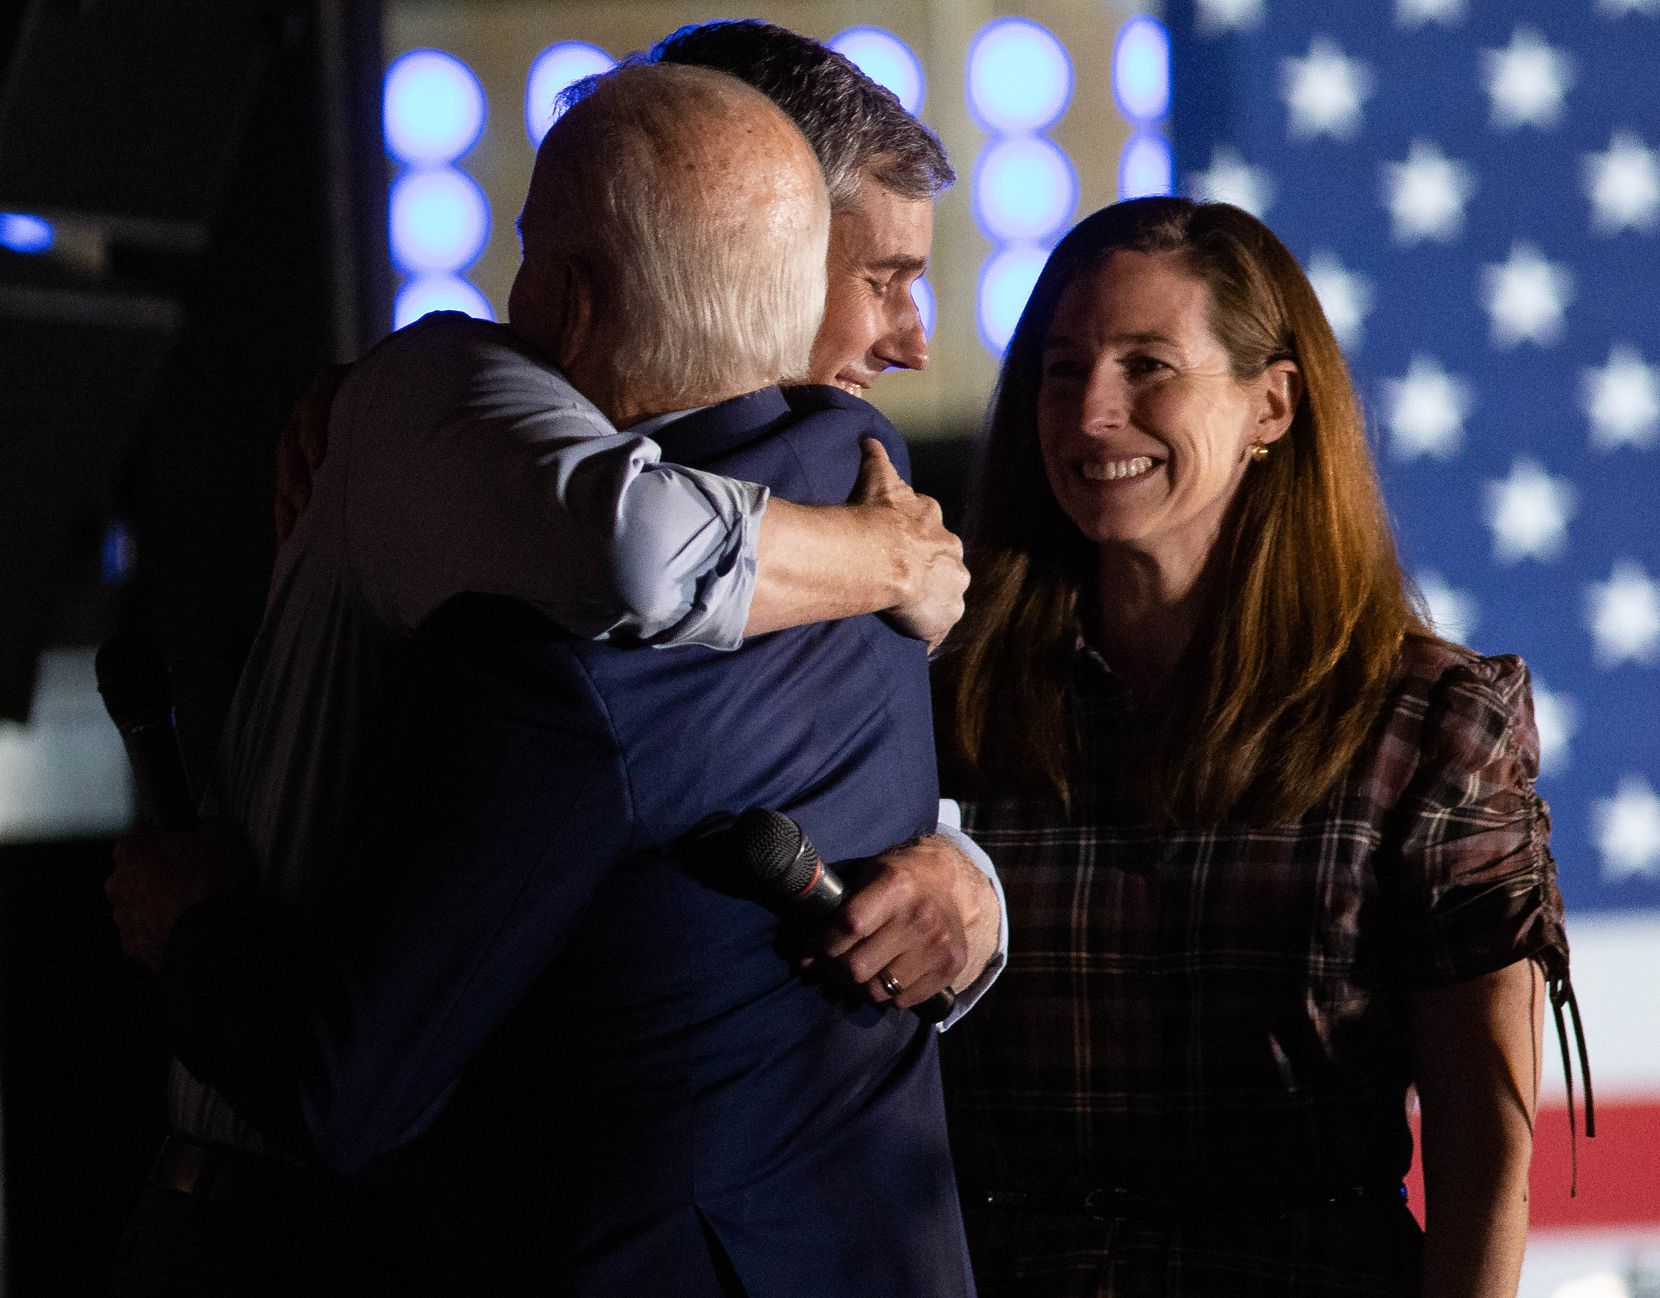 Former Rep. Beto O'Rourke endorses Democratic presidential primary candidate Joe Biden during a rally held at Gilley's in Dallas on March 2, 2020. With them is O'Rourke's wife Amy O'Rourke.